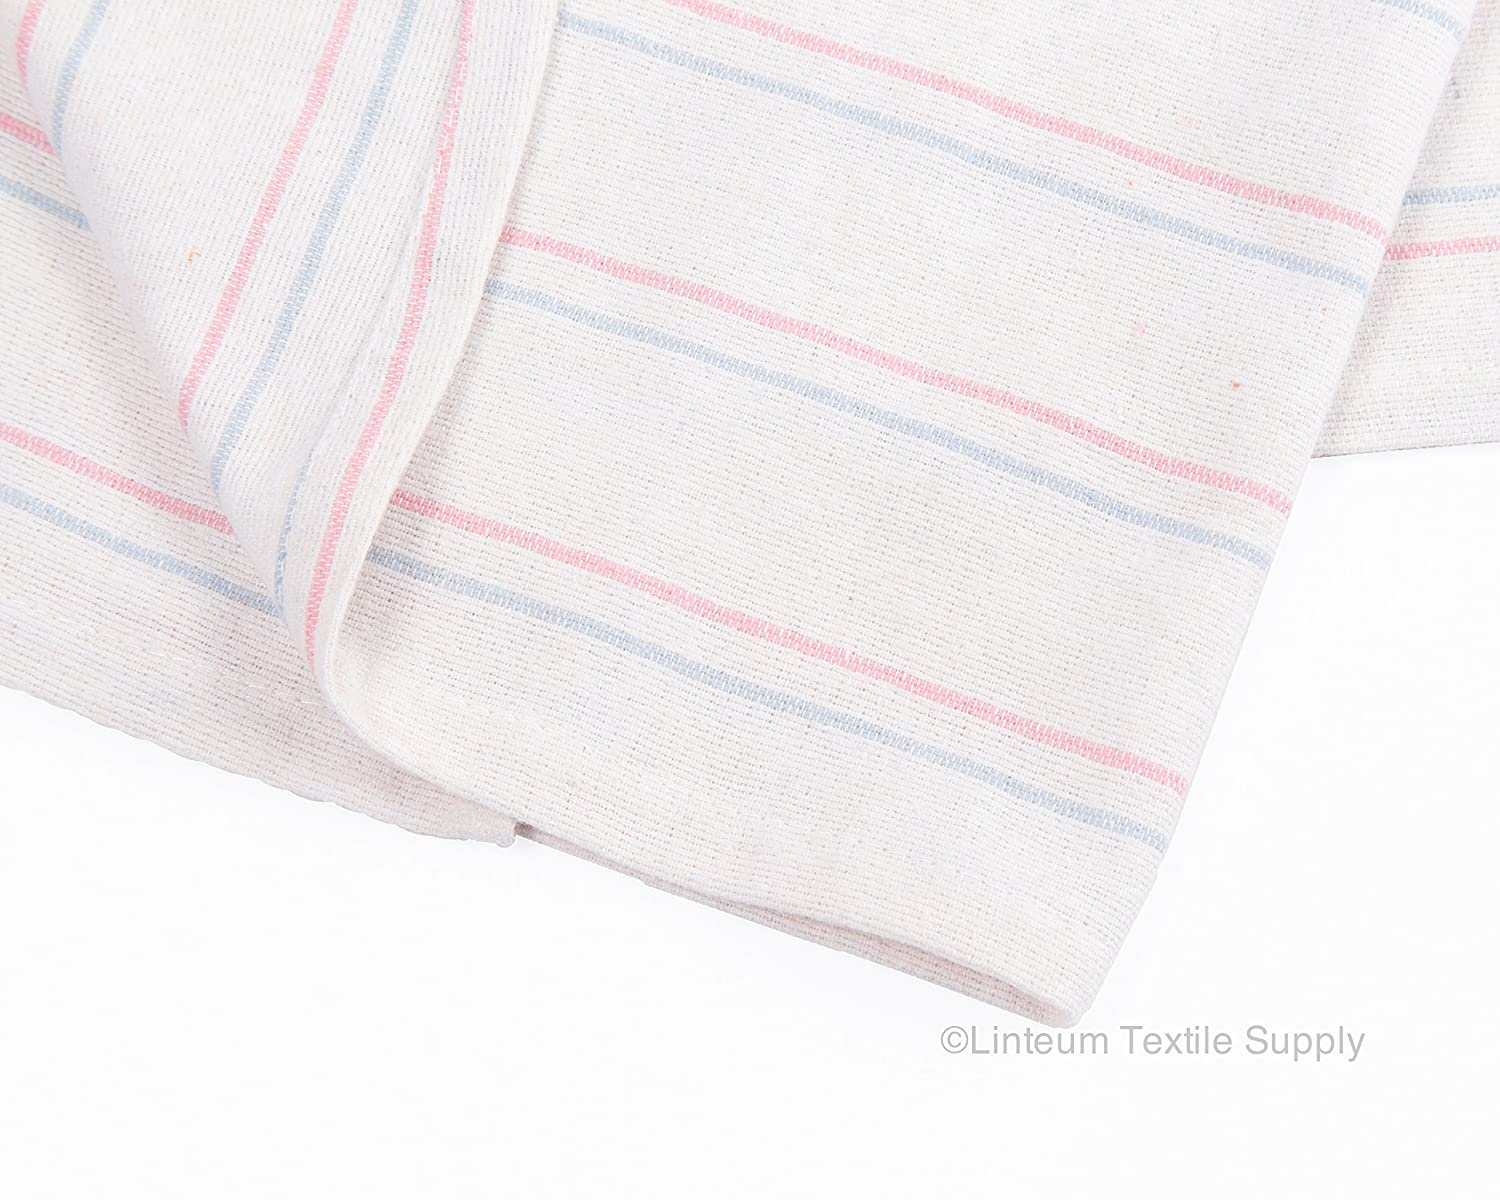 Linteum Textile Receiving HOSPITAL BABY BLANKETS White w//Blue /& Pink Stripes Linteum Textile Supply LT3636BABY 12-Pack, 36x36 in